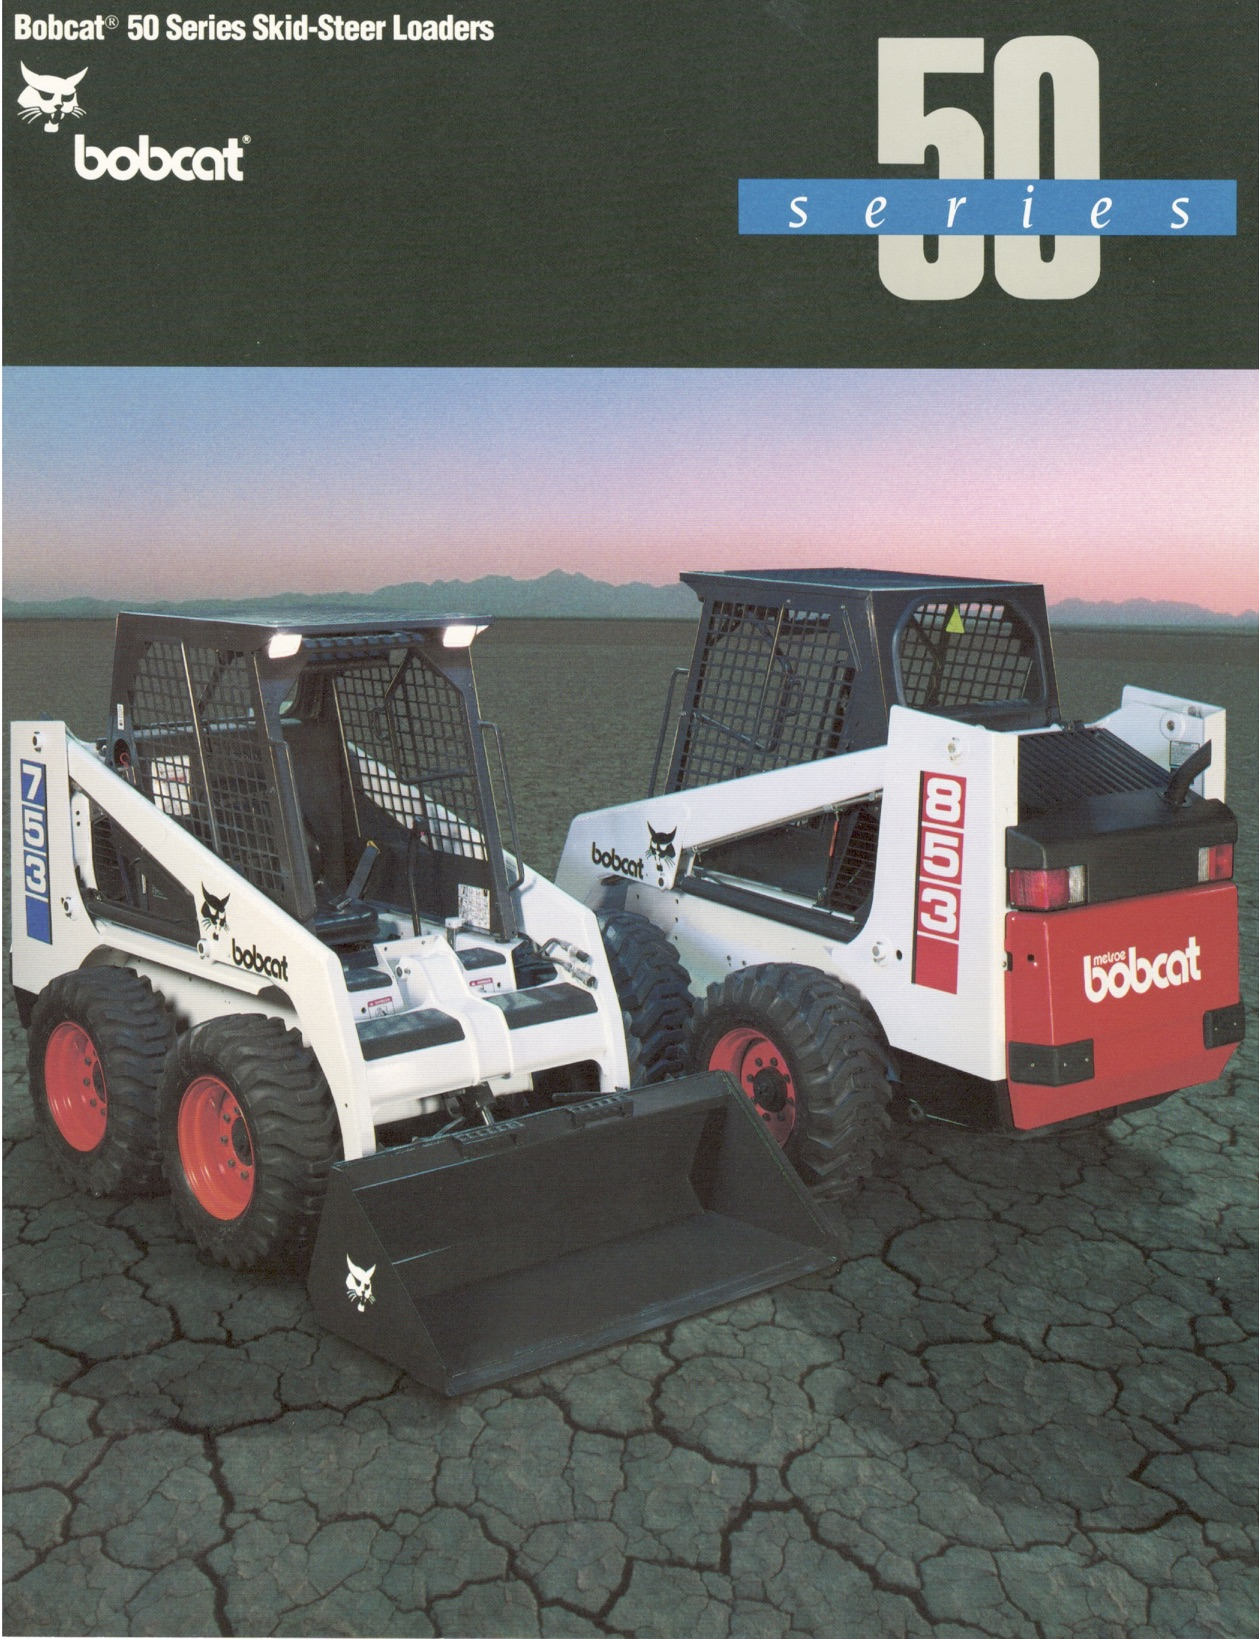 Bobcat 50 Series Loader Worked Like a BOSS